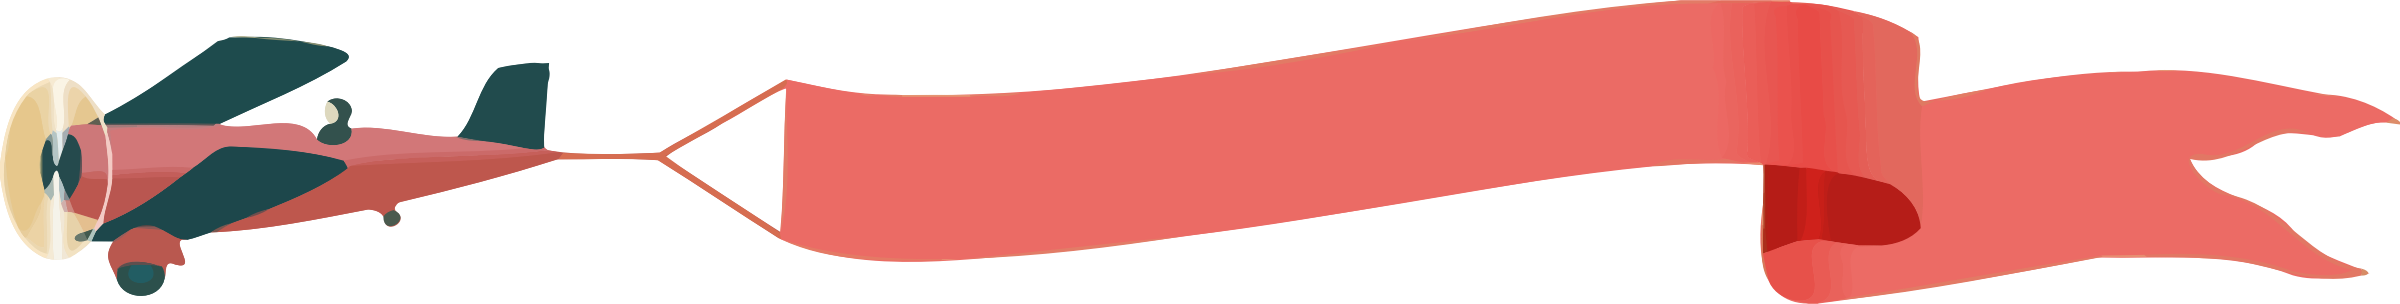 Clipart plane banner. With big image png